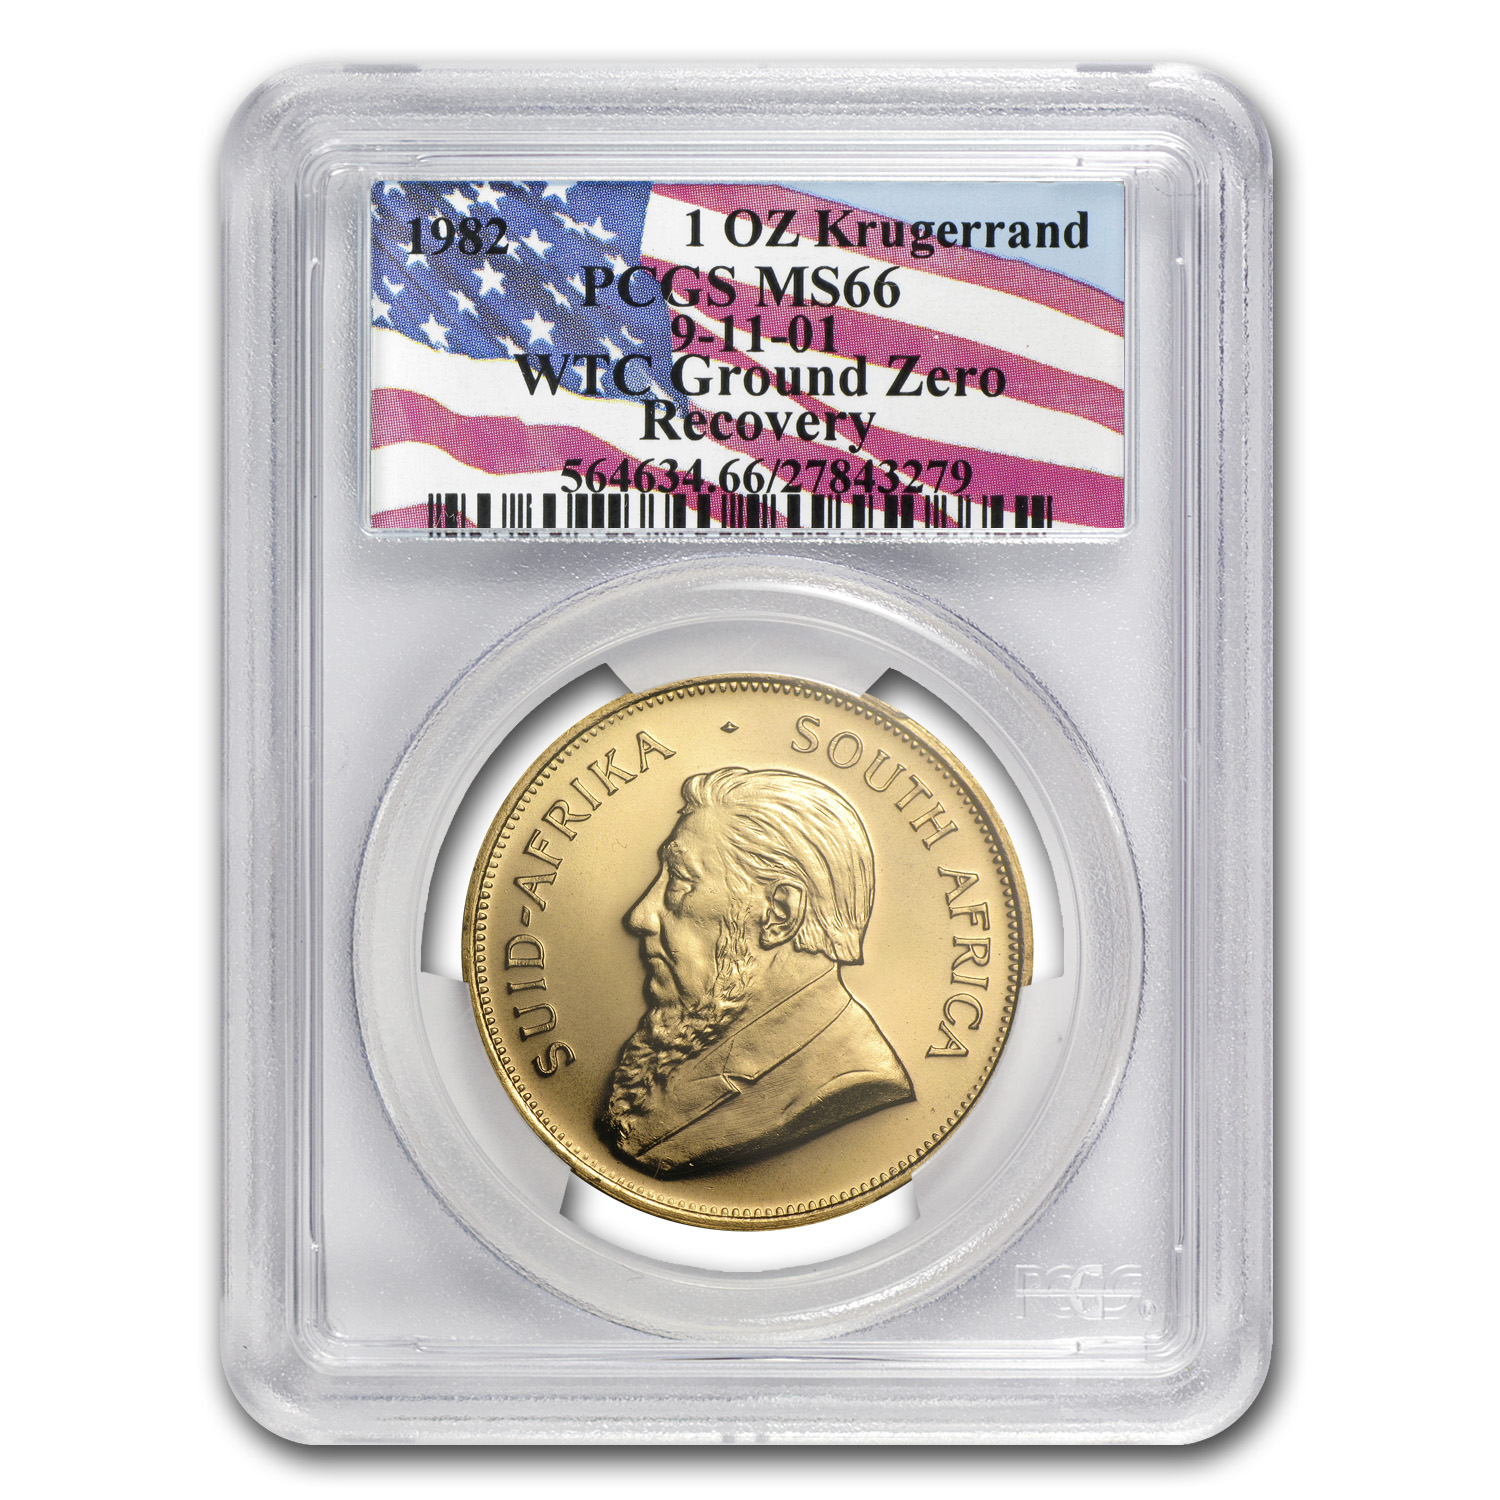 1982 South Africa 1 oz Gold Krugerrand MS-66 PCGS (WTC)